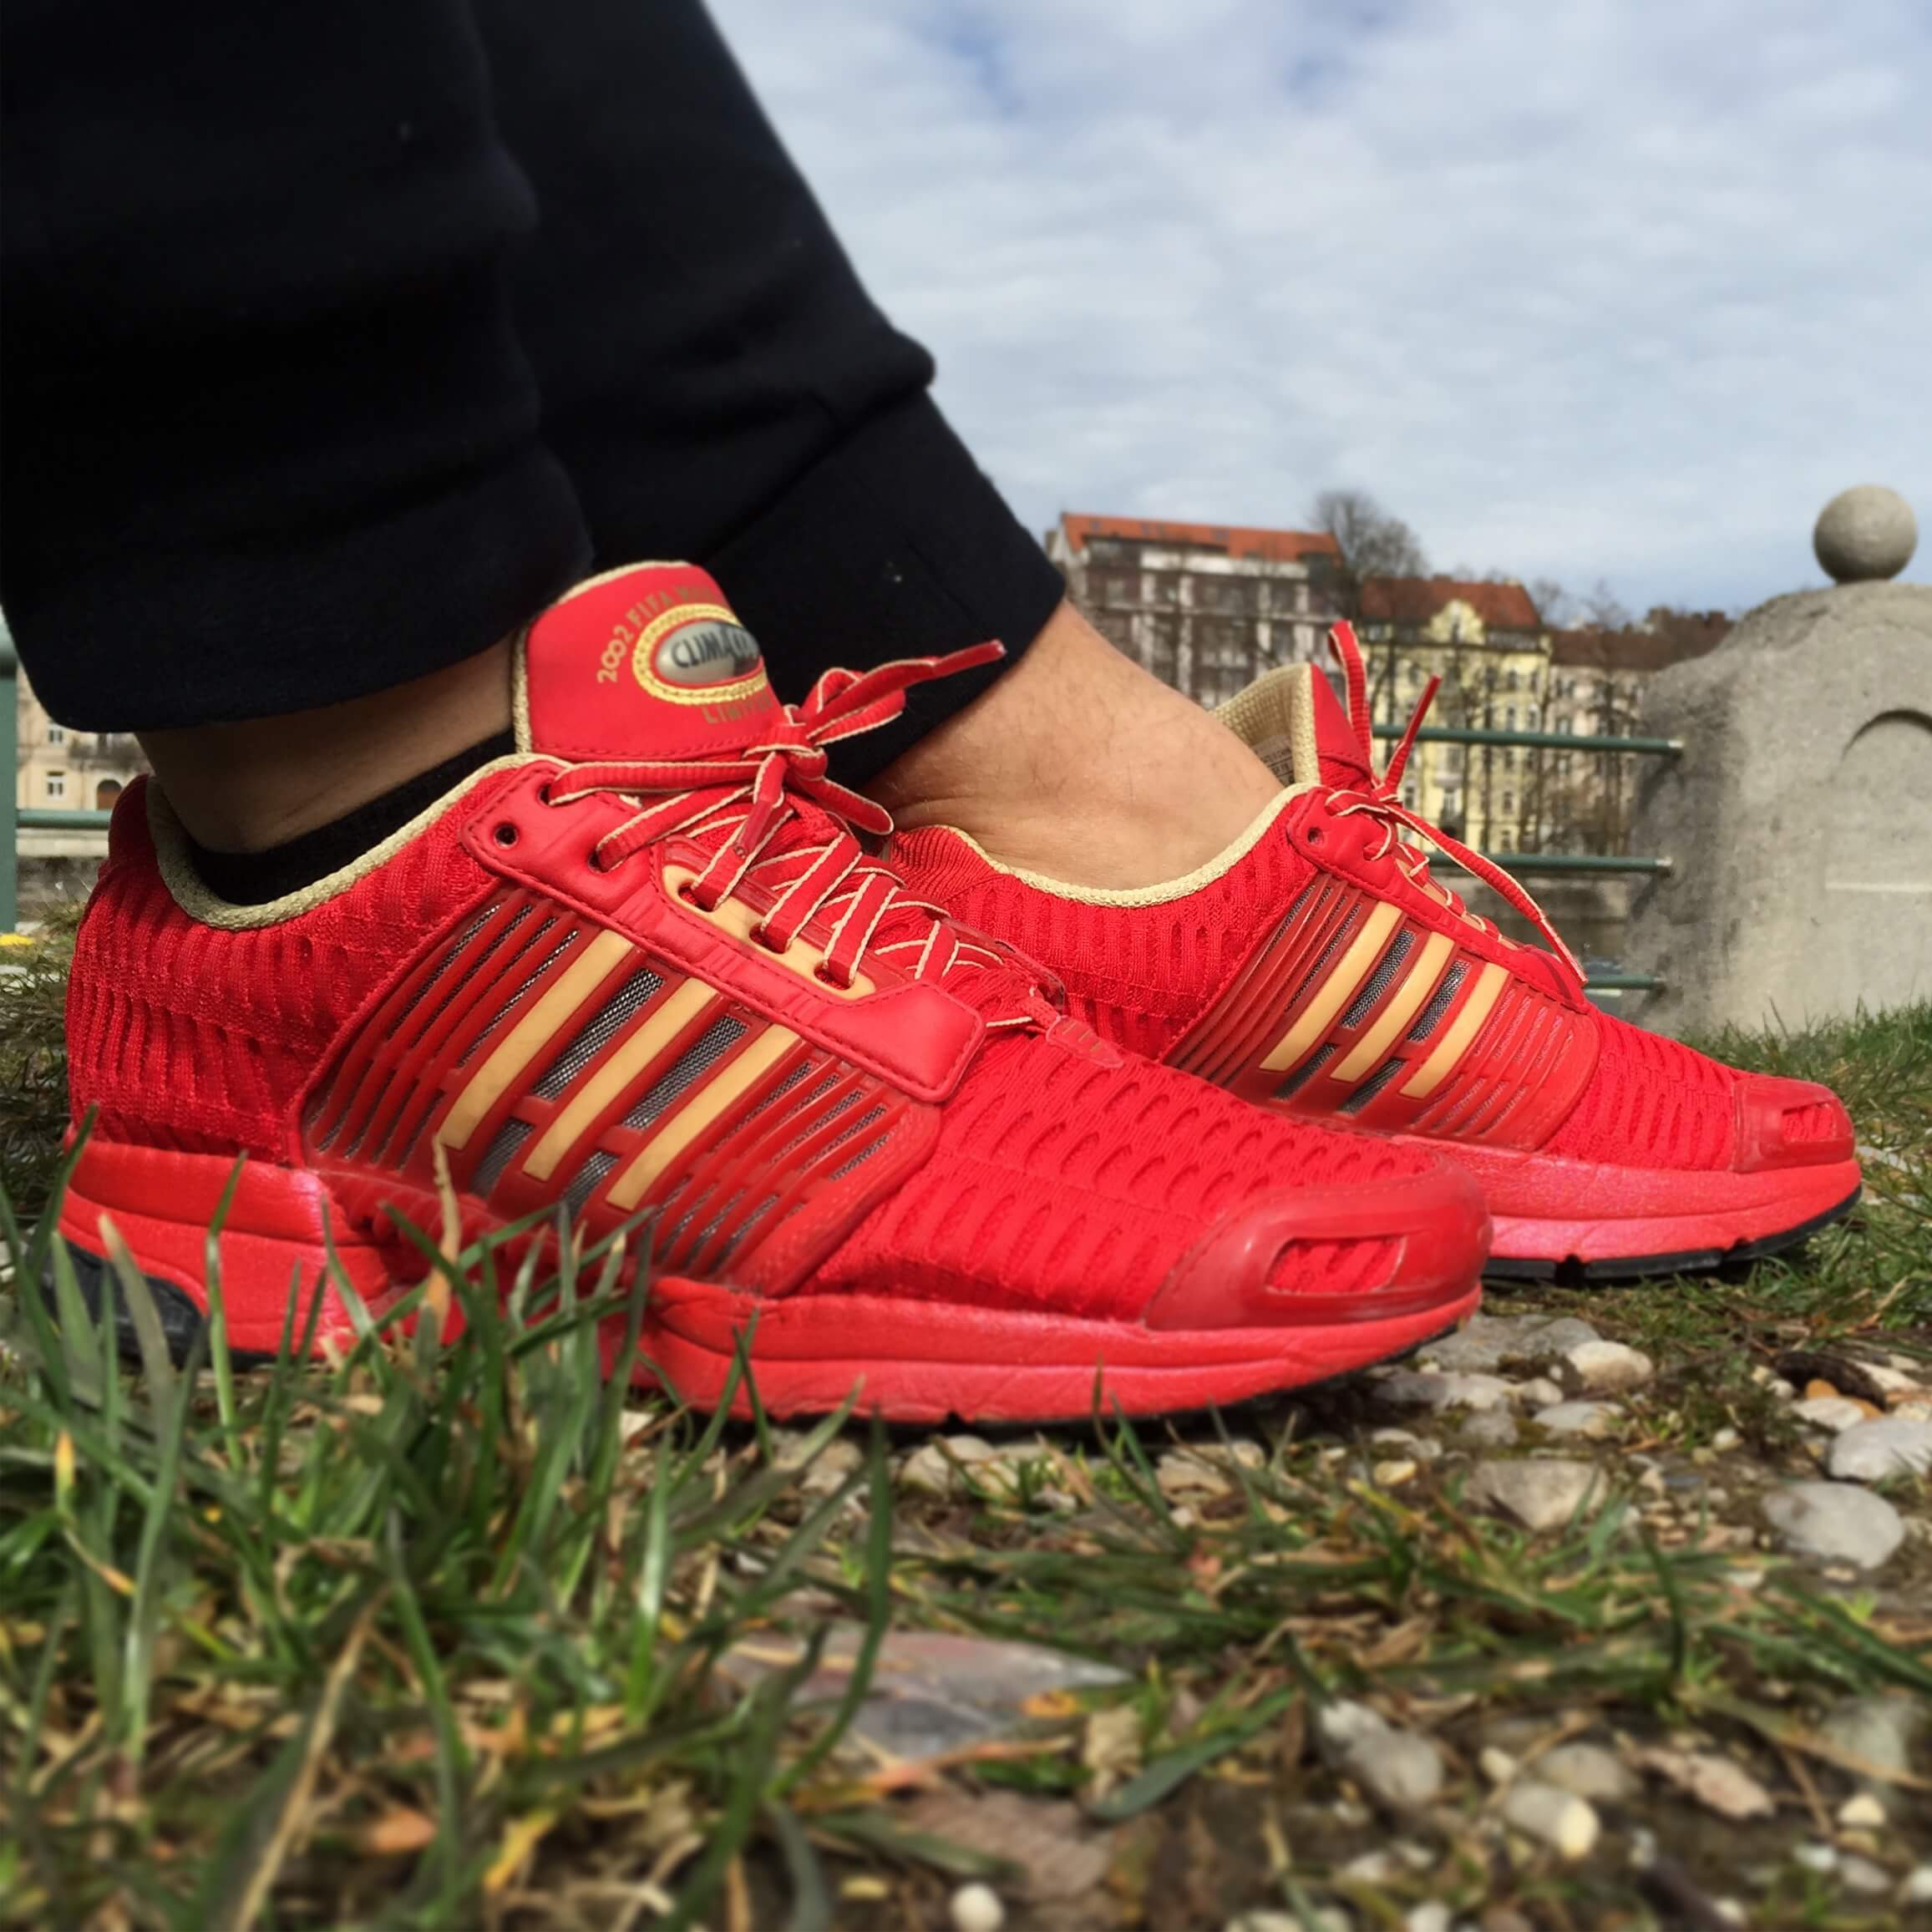 Adidas-ClimaCool-Coca-Cola-Side-View-Alt-Benstah-Onfeet